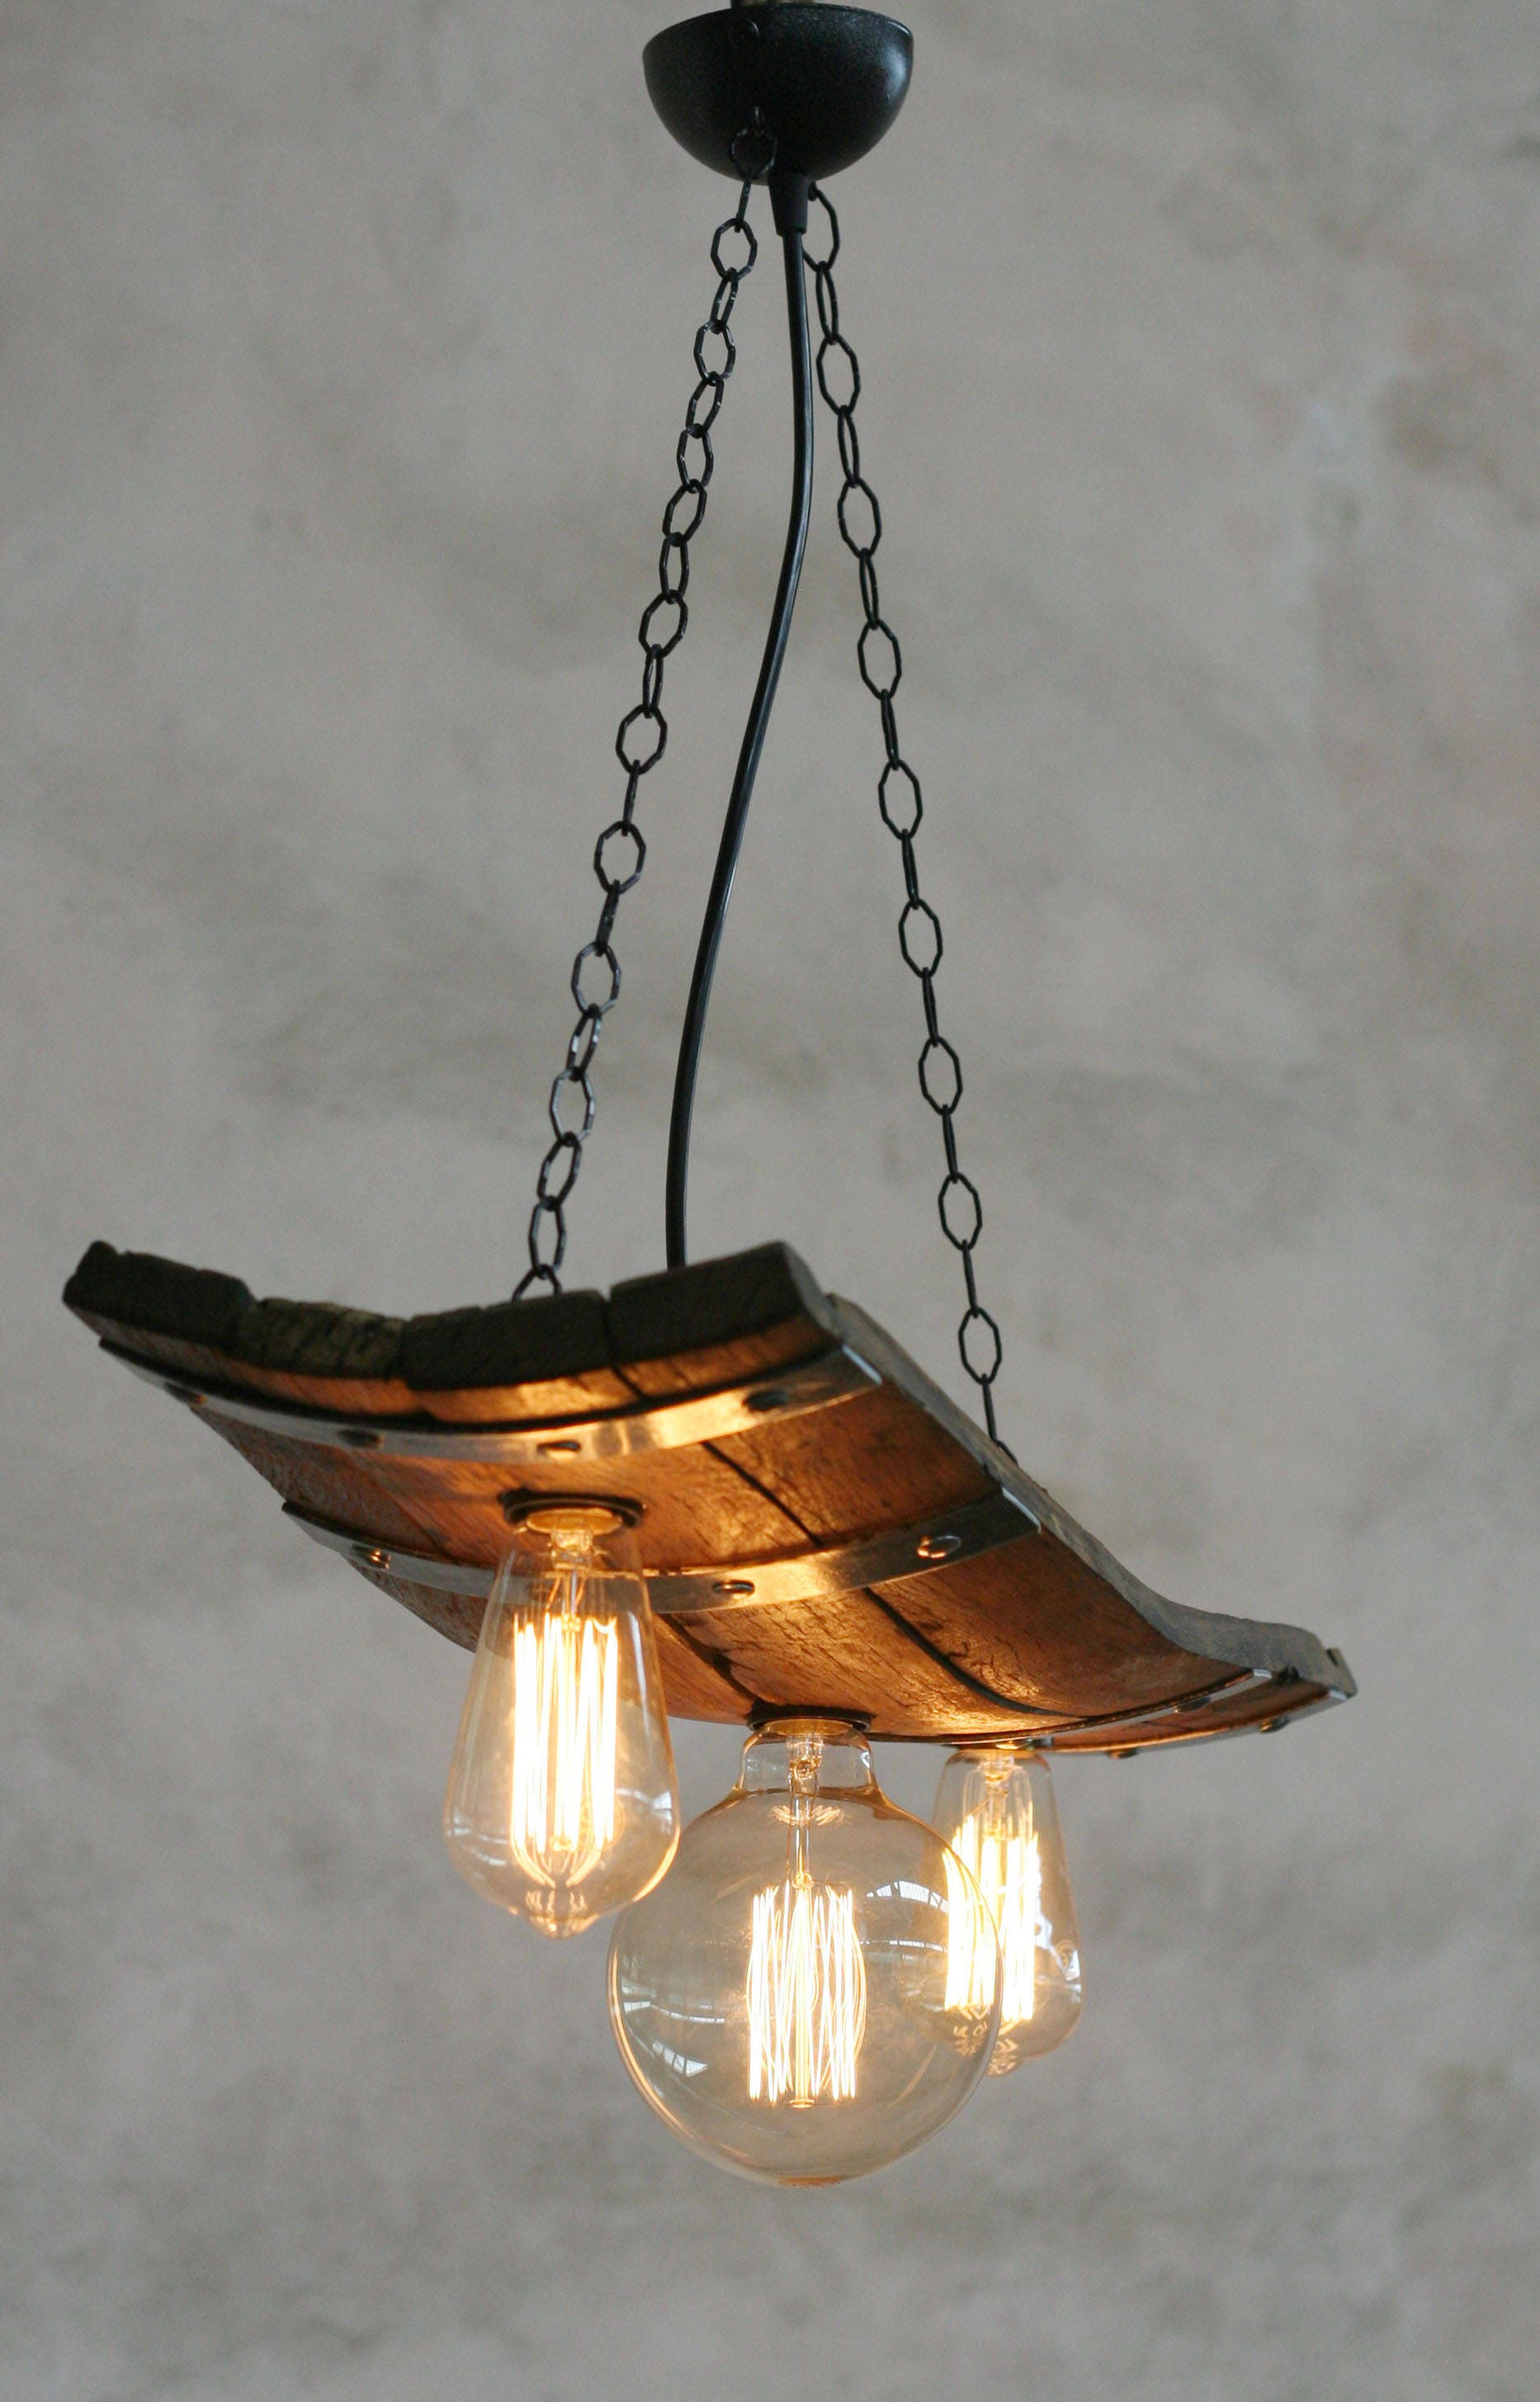 Rustic ceiling lights Wine barrel with 3 lights